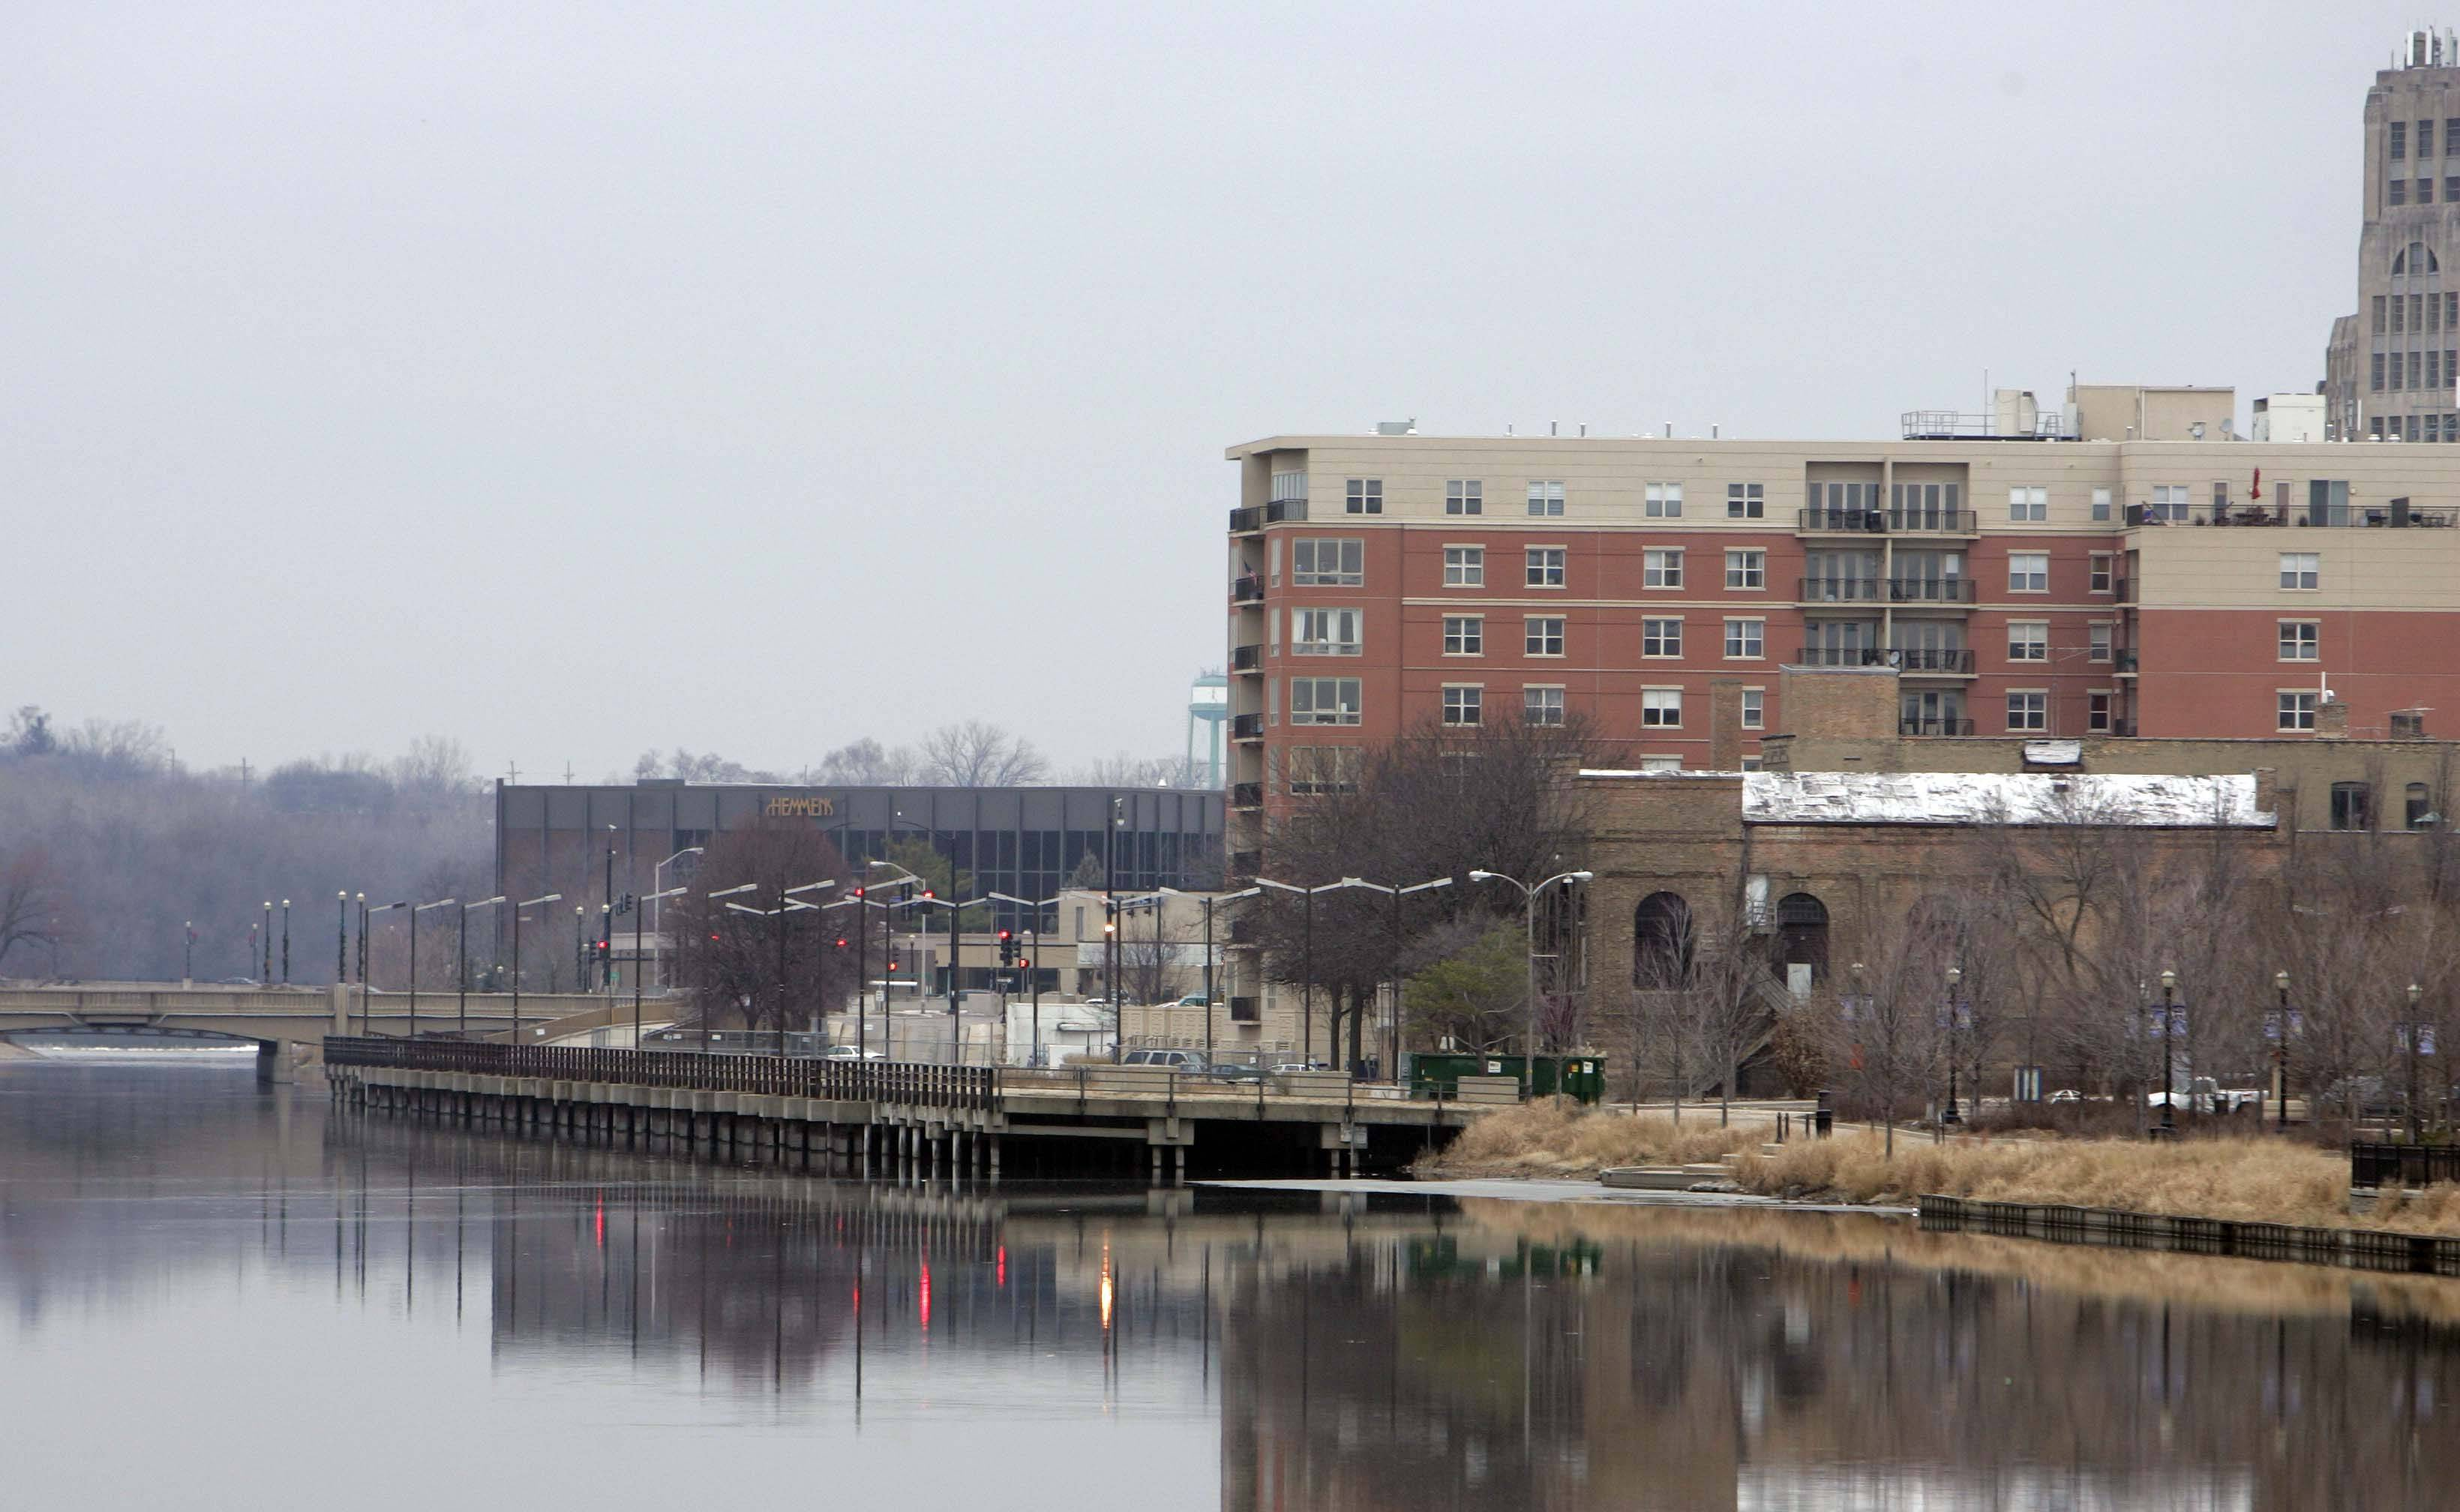 The Riverside Drive Promenade project has been in the works for years but is finally poised to start this spring. The state has been holding onto a promised $8 million since October 2010 but Elgin officials said the money will be released and demolition of the existing Riverside Drive parking deck may start in the spring.